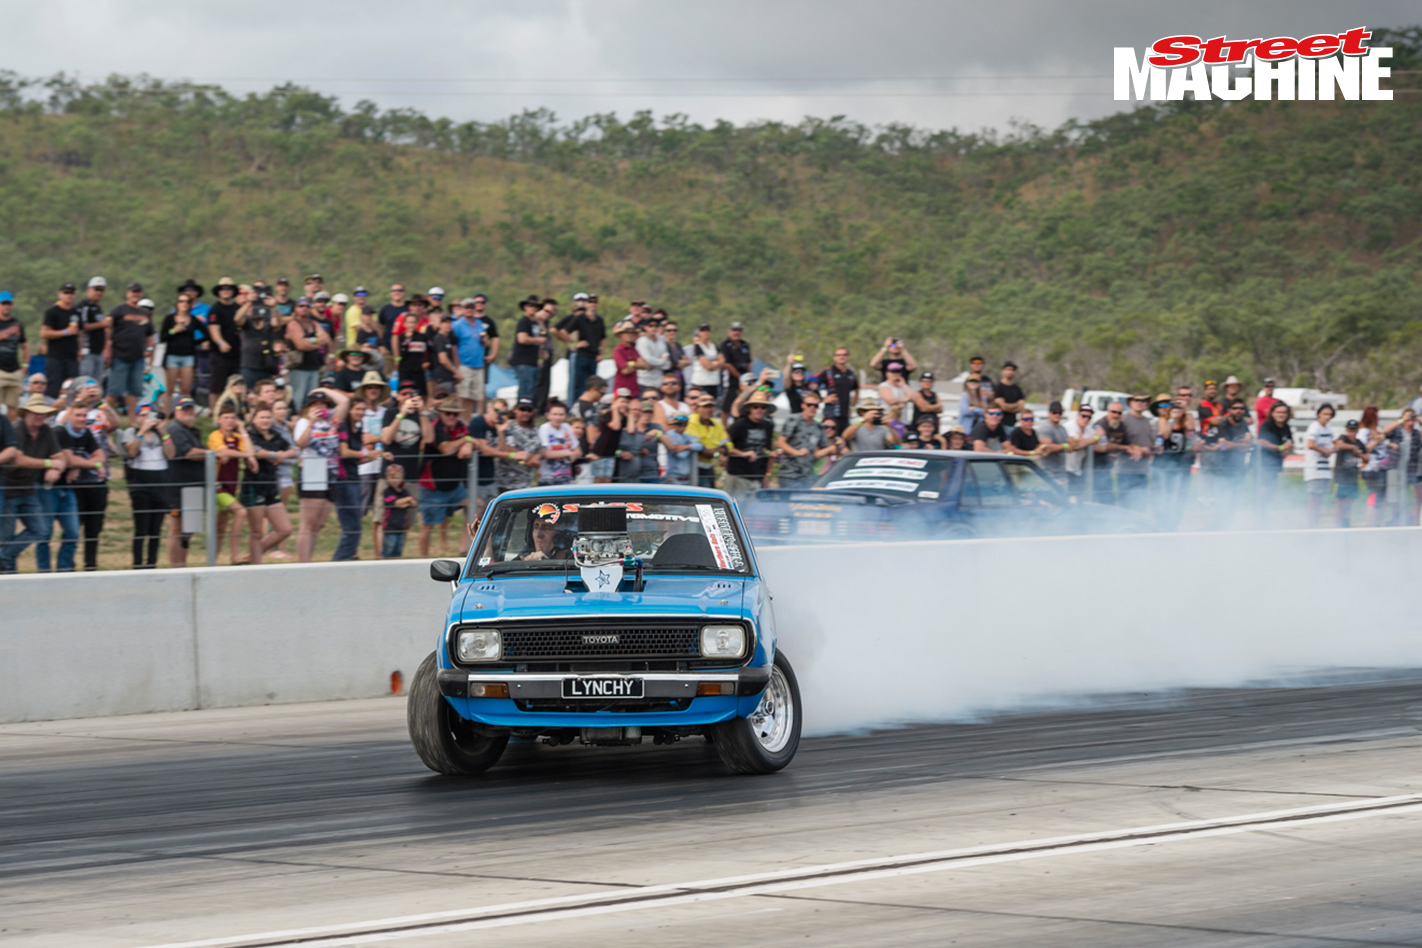 Lynchy V8 Corolla Burnout